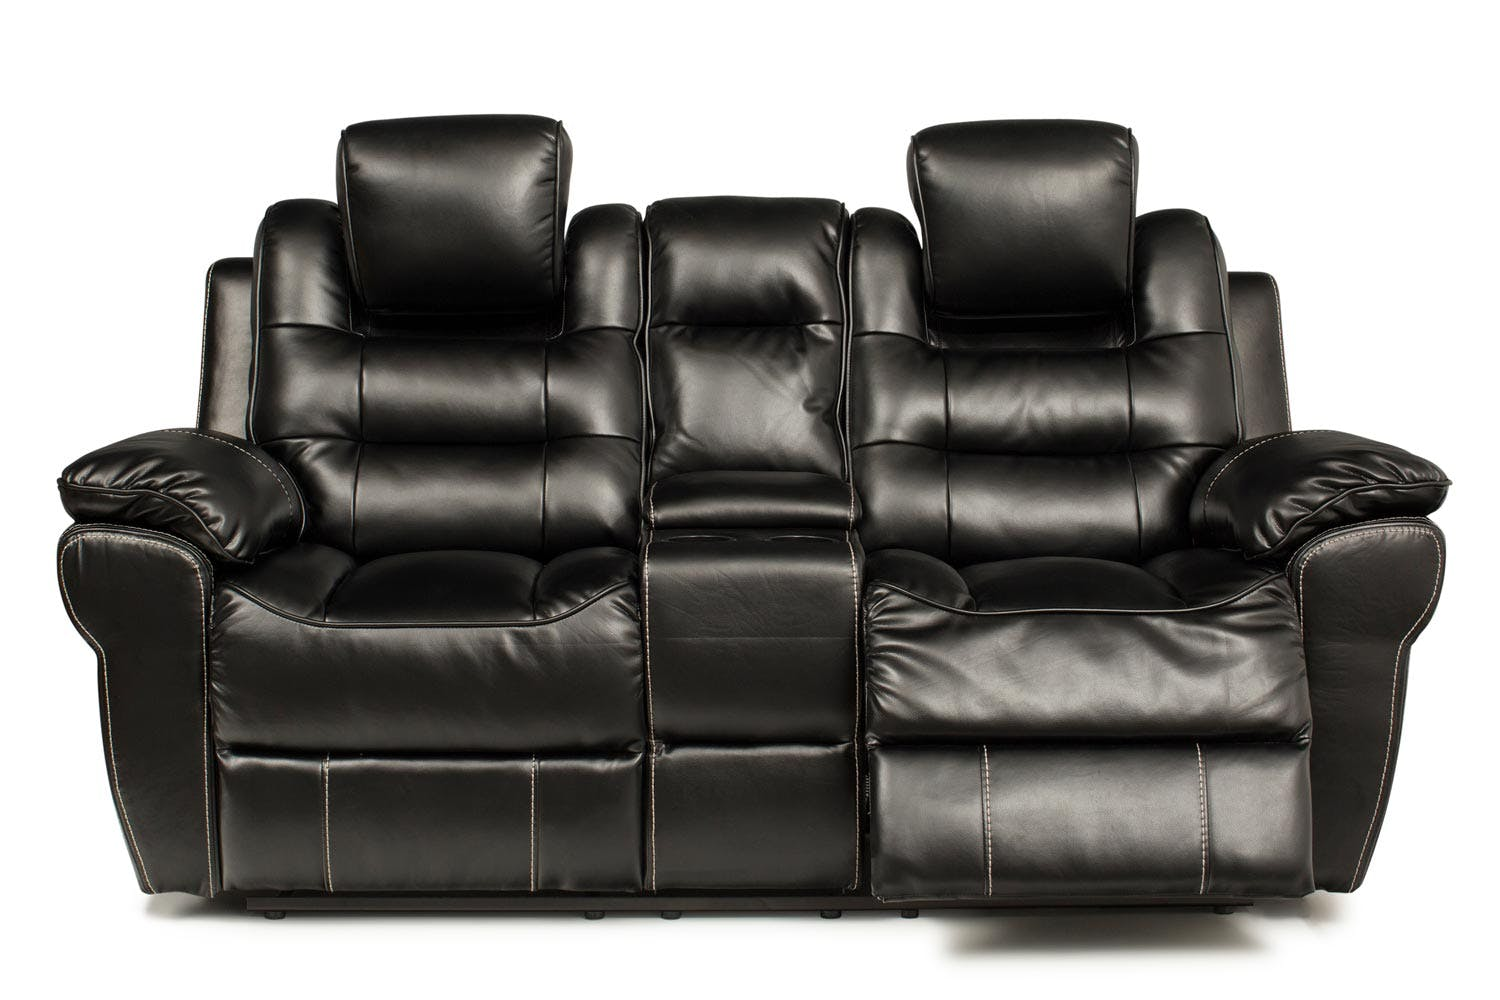 Baxter 2 Seater Recliner Electric Console